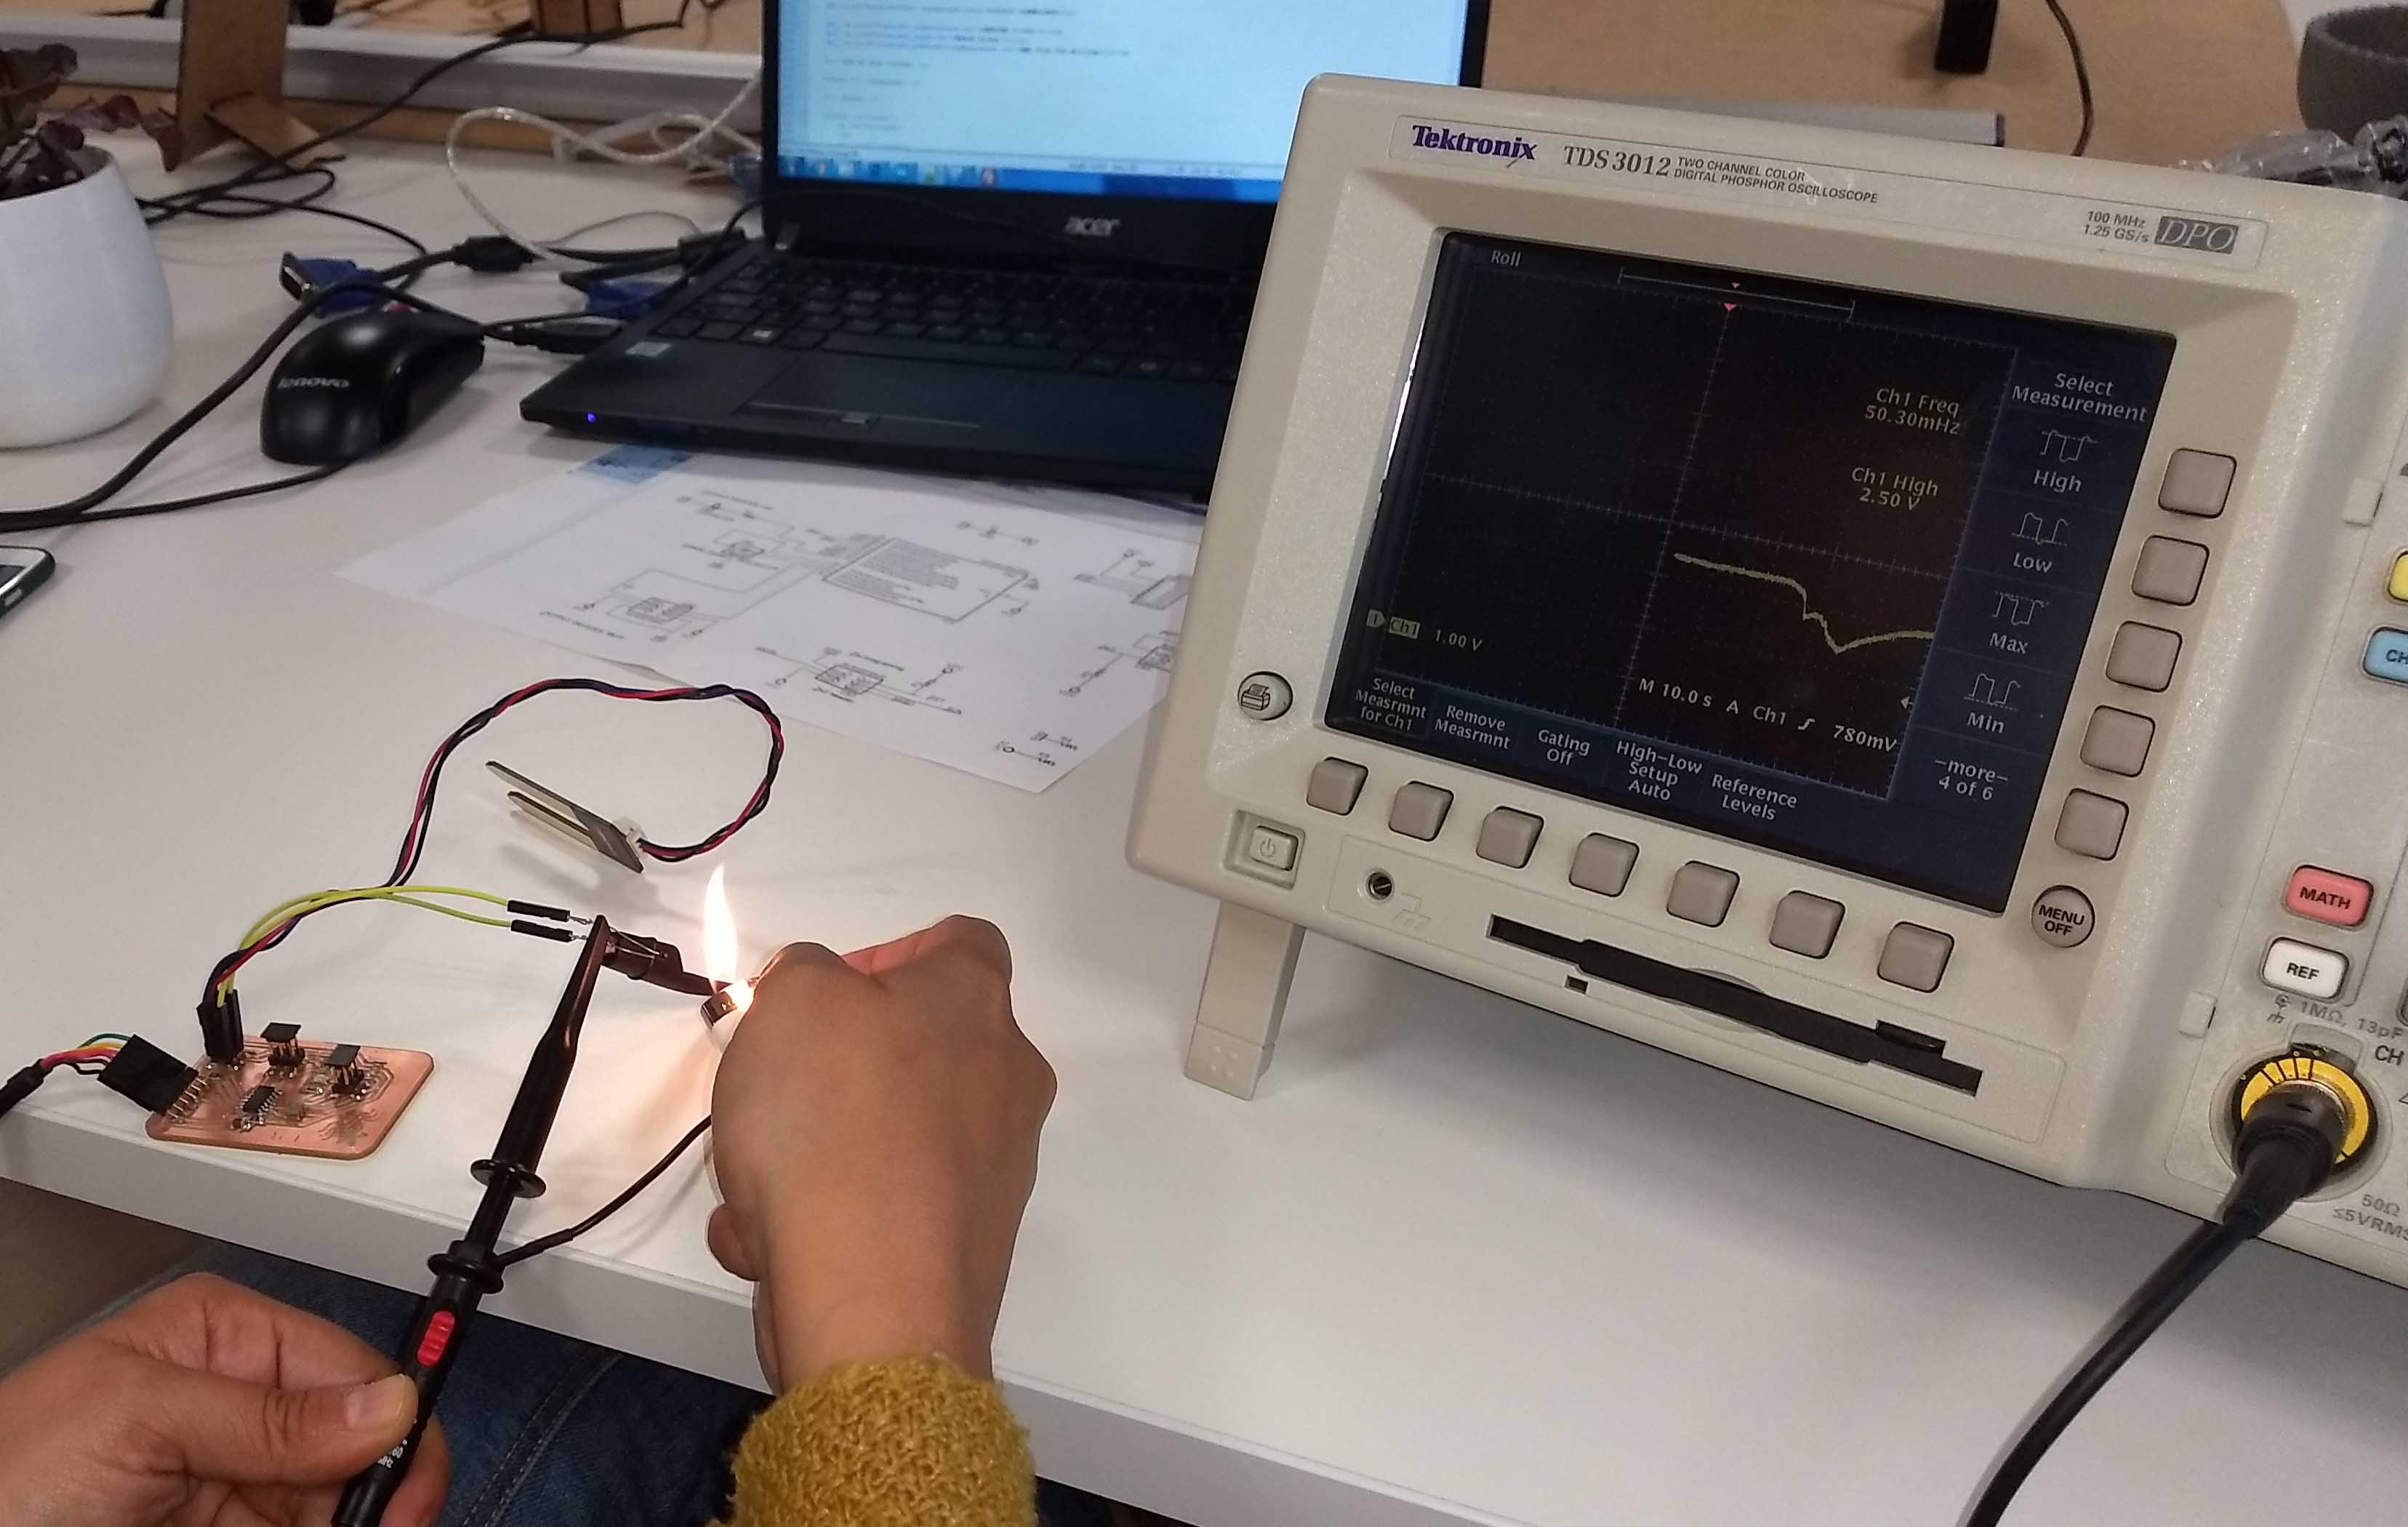 Fab Academy 2018 Leire Bereziartua Pcb Cutting Machine Sewing Modification Electronics Projects And For Viewing Of The Digital Signal We Have Used Exercise 07 Which Has A Button Using Multimeter Tester Polimeter Voltimeter